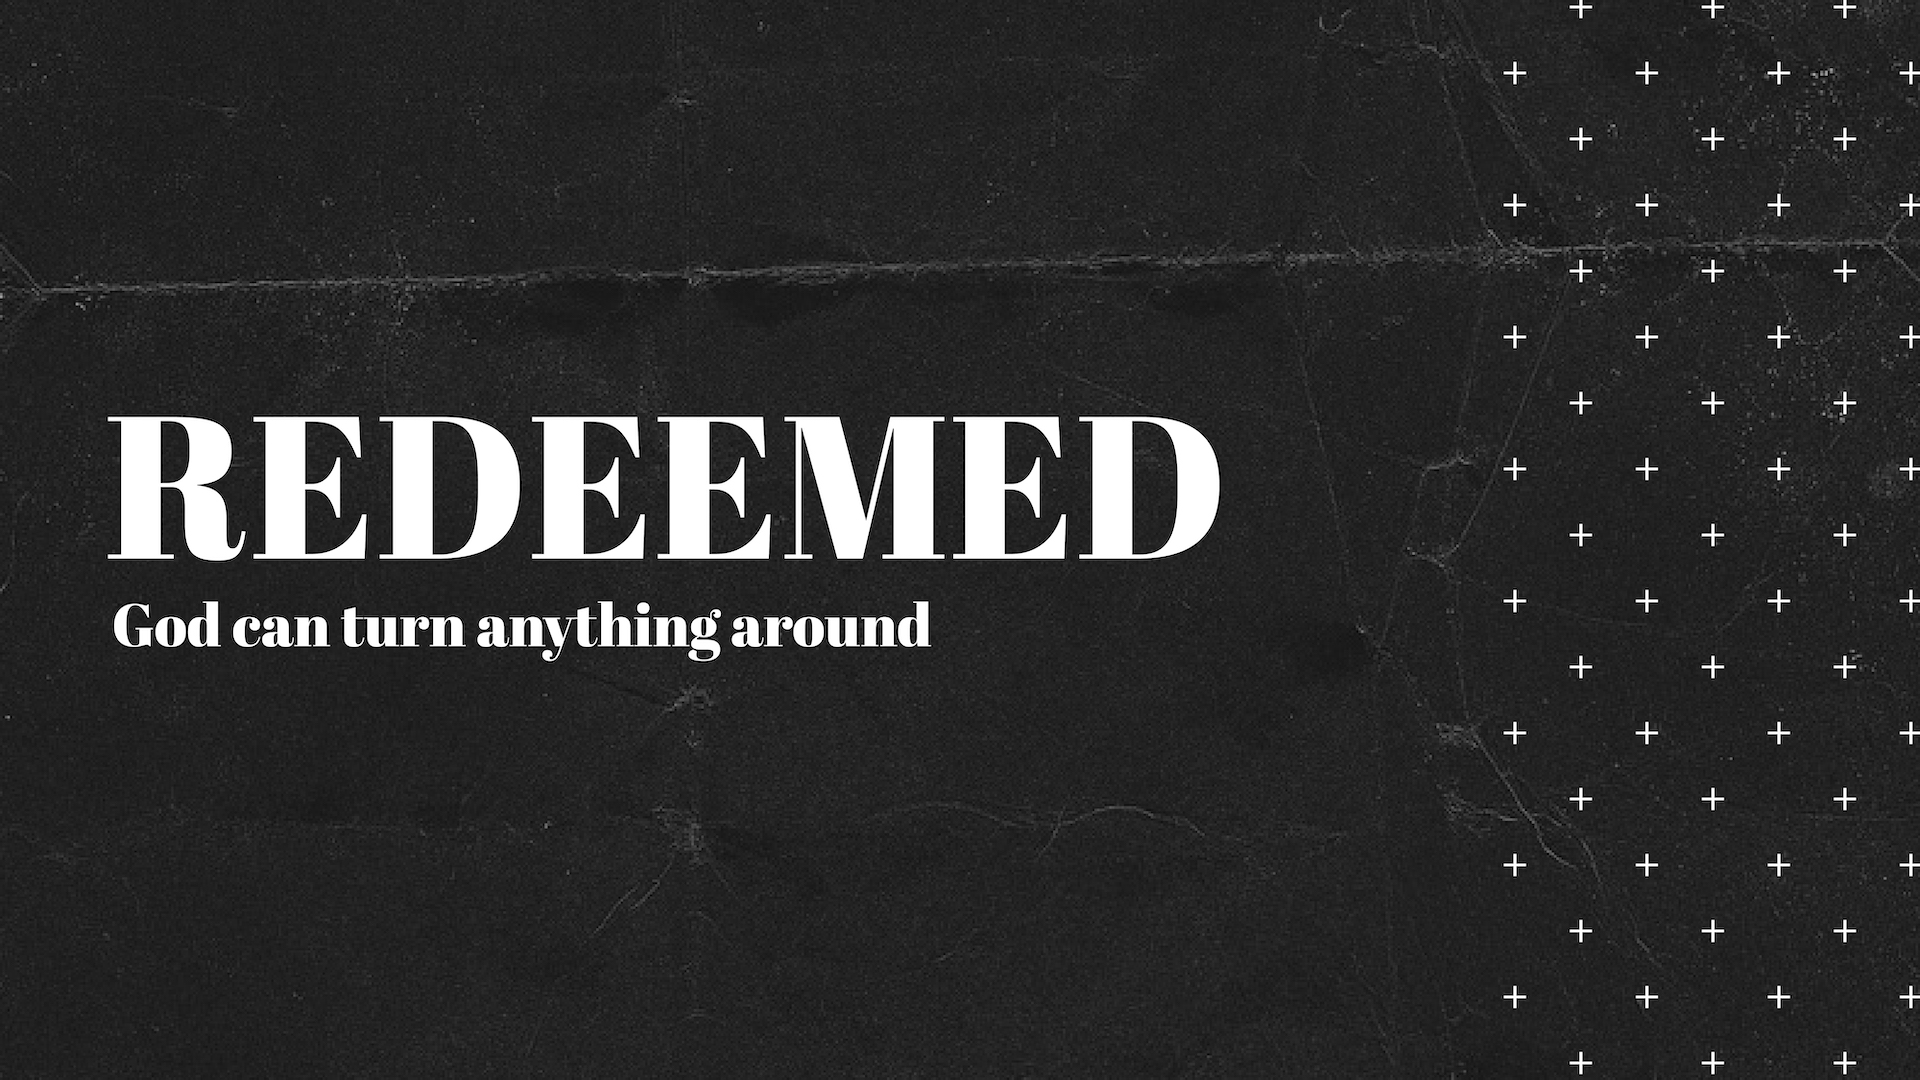 redeemed - THE MANY REDEMPTIVE STORIES FROM THE BIBLE. FROM RUTH TO RAHAB, WE HEAR HOW GOD'S MERCY CAN BRING US TO NEW MEANING AND NEW PURPOSE.